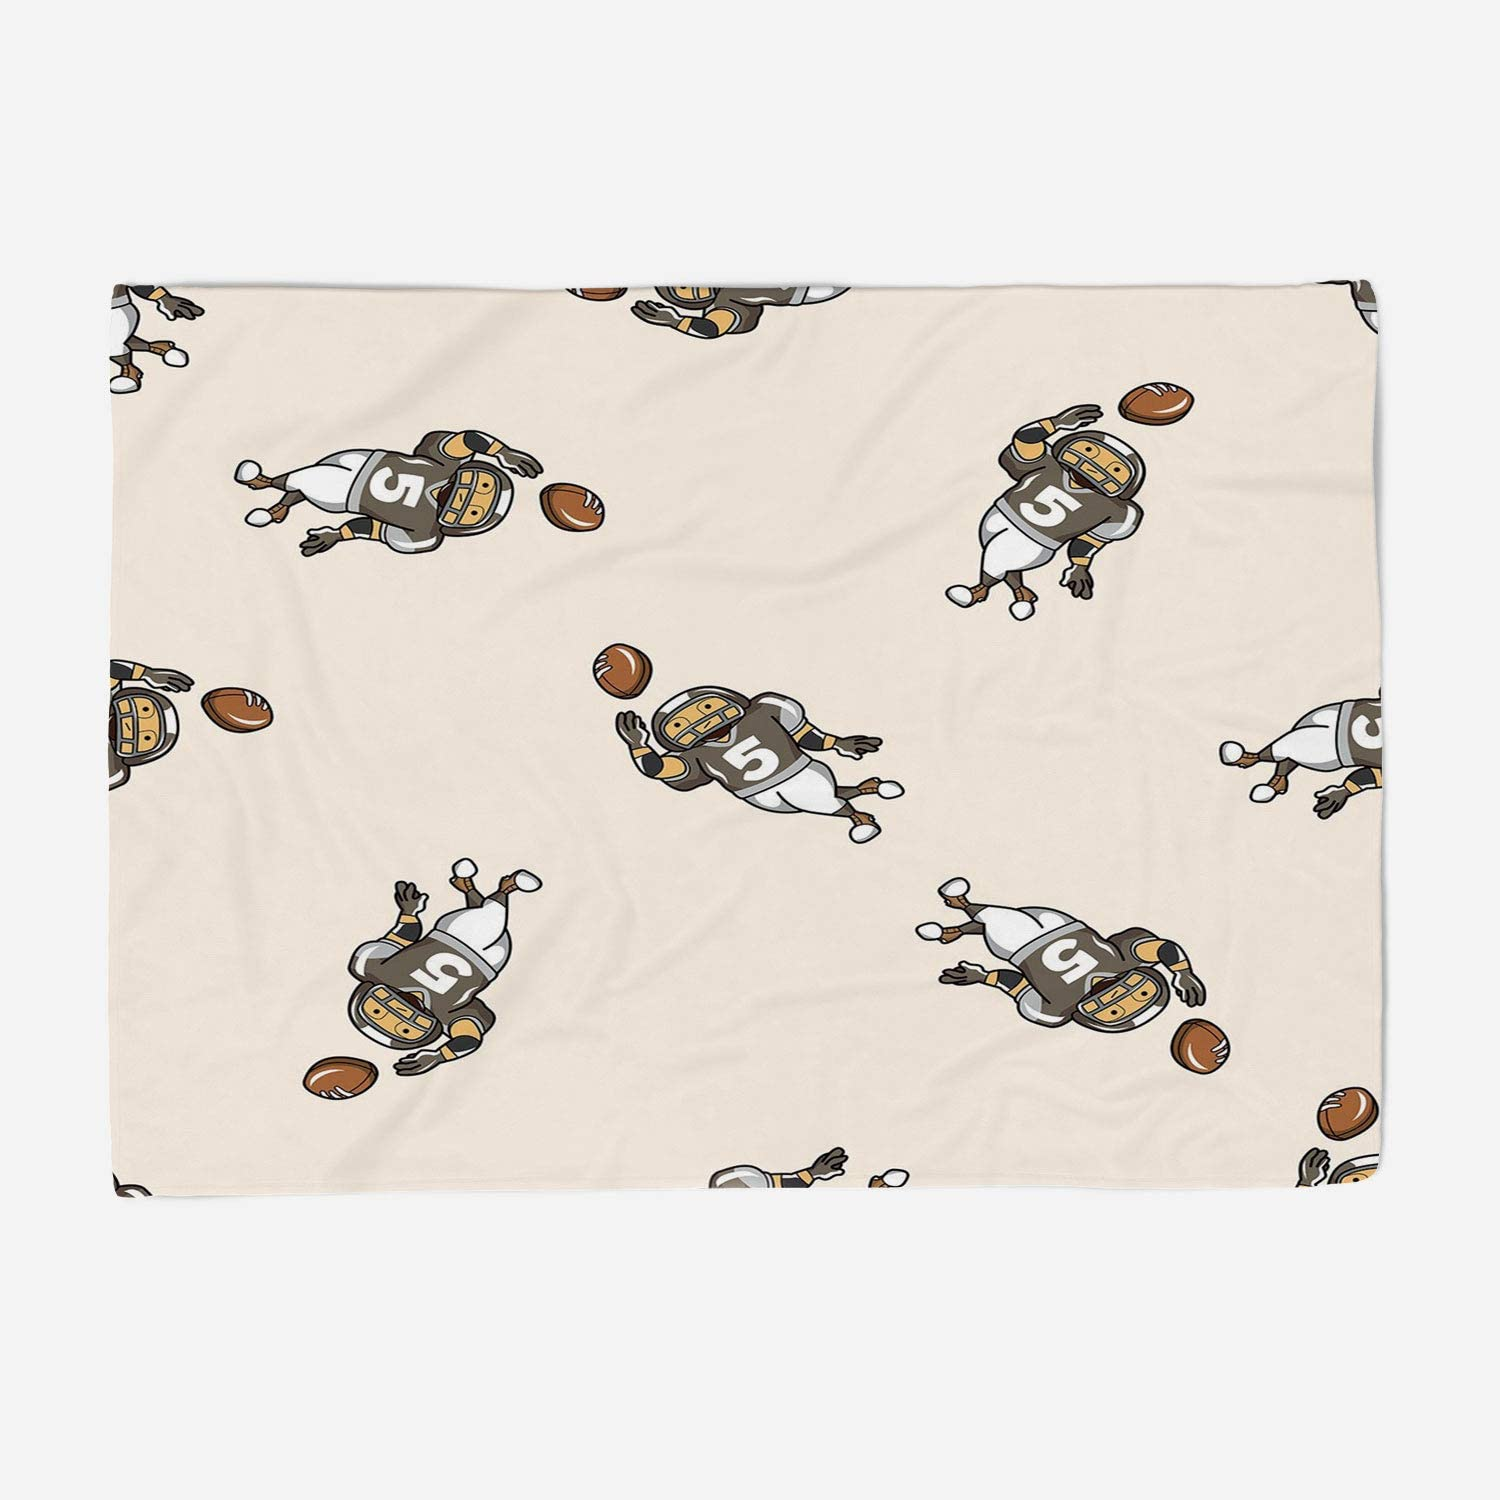 YOLIYANA Microfiber Throw Blanket Set Perfect for Couch Sofa or Bed 59x49 inches Football,Pattern of Cartoon Player Running with The Ball Training for The Game Rugby Decorative,Taupe Brown White